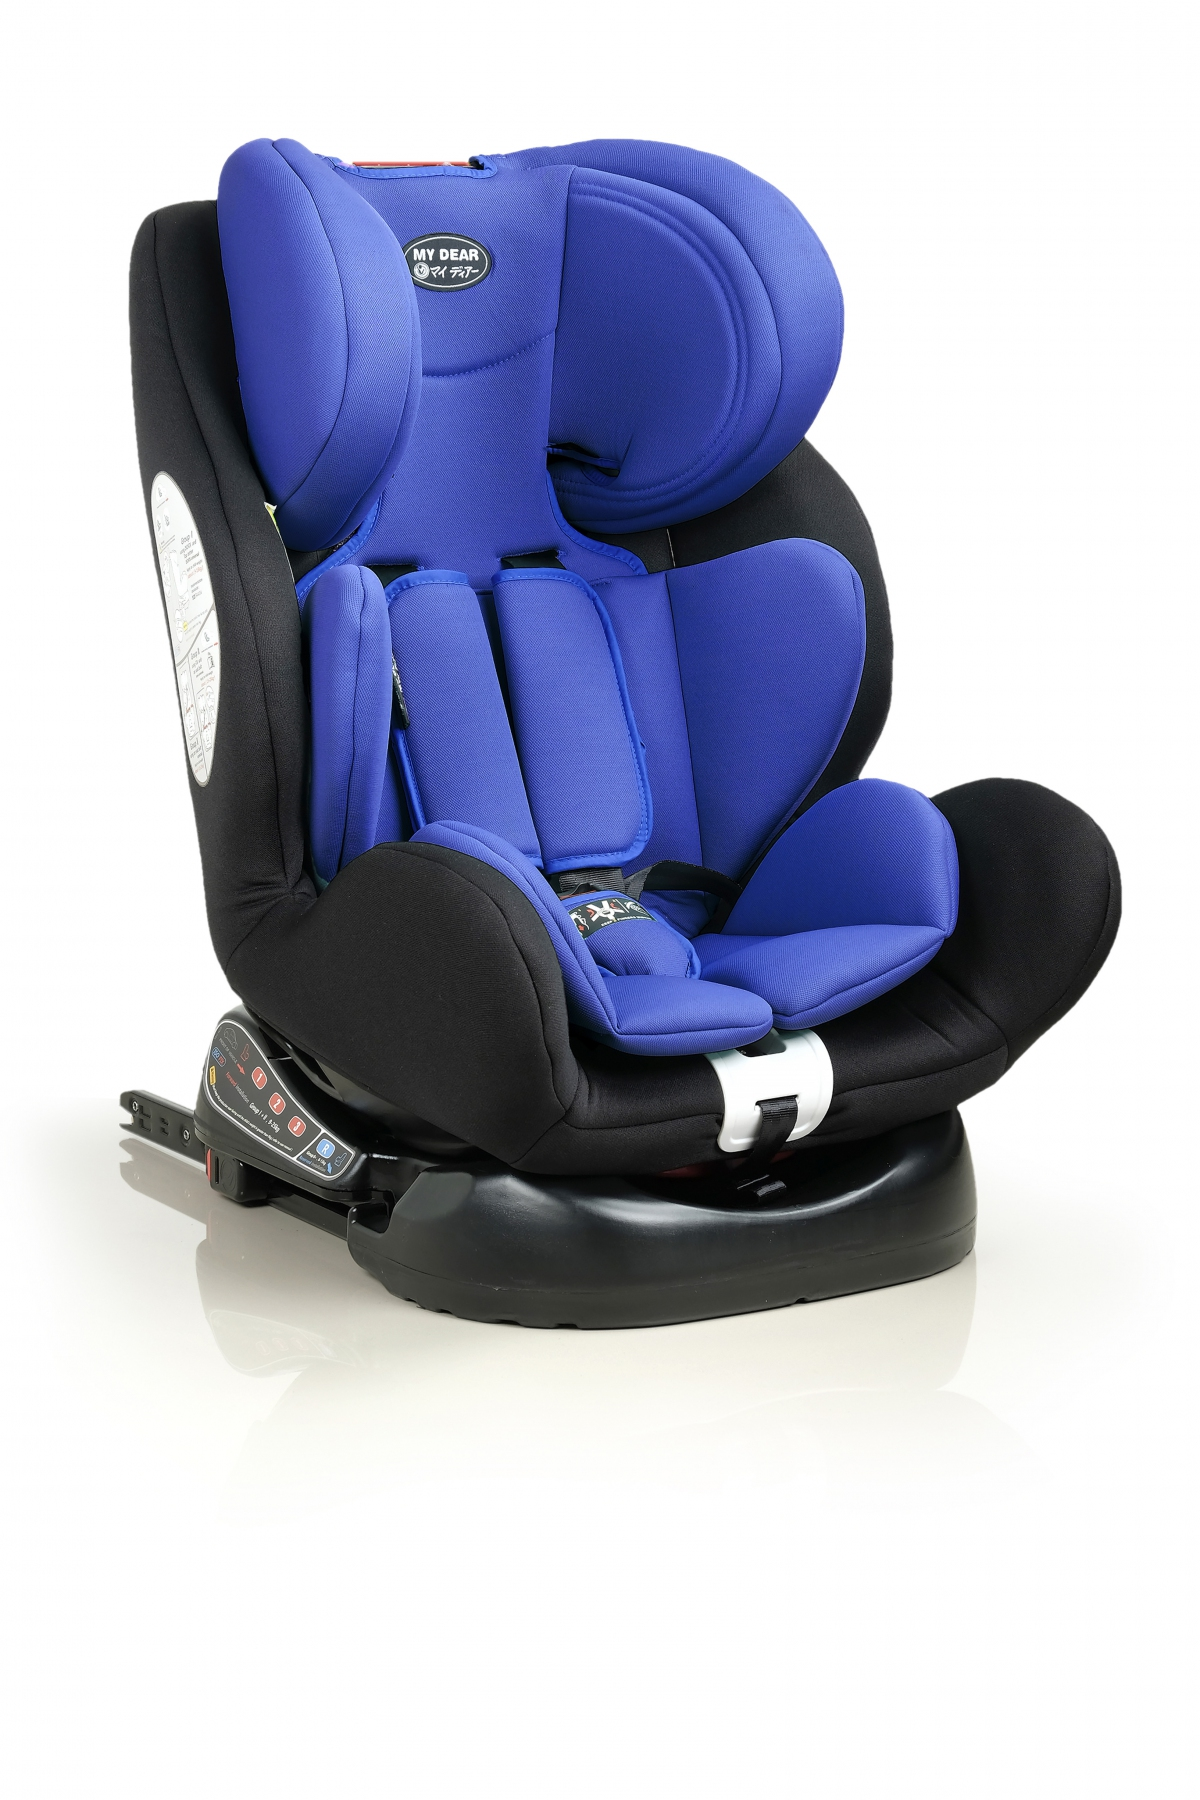 30018 Car Seat With Isofix Baby Car Seat